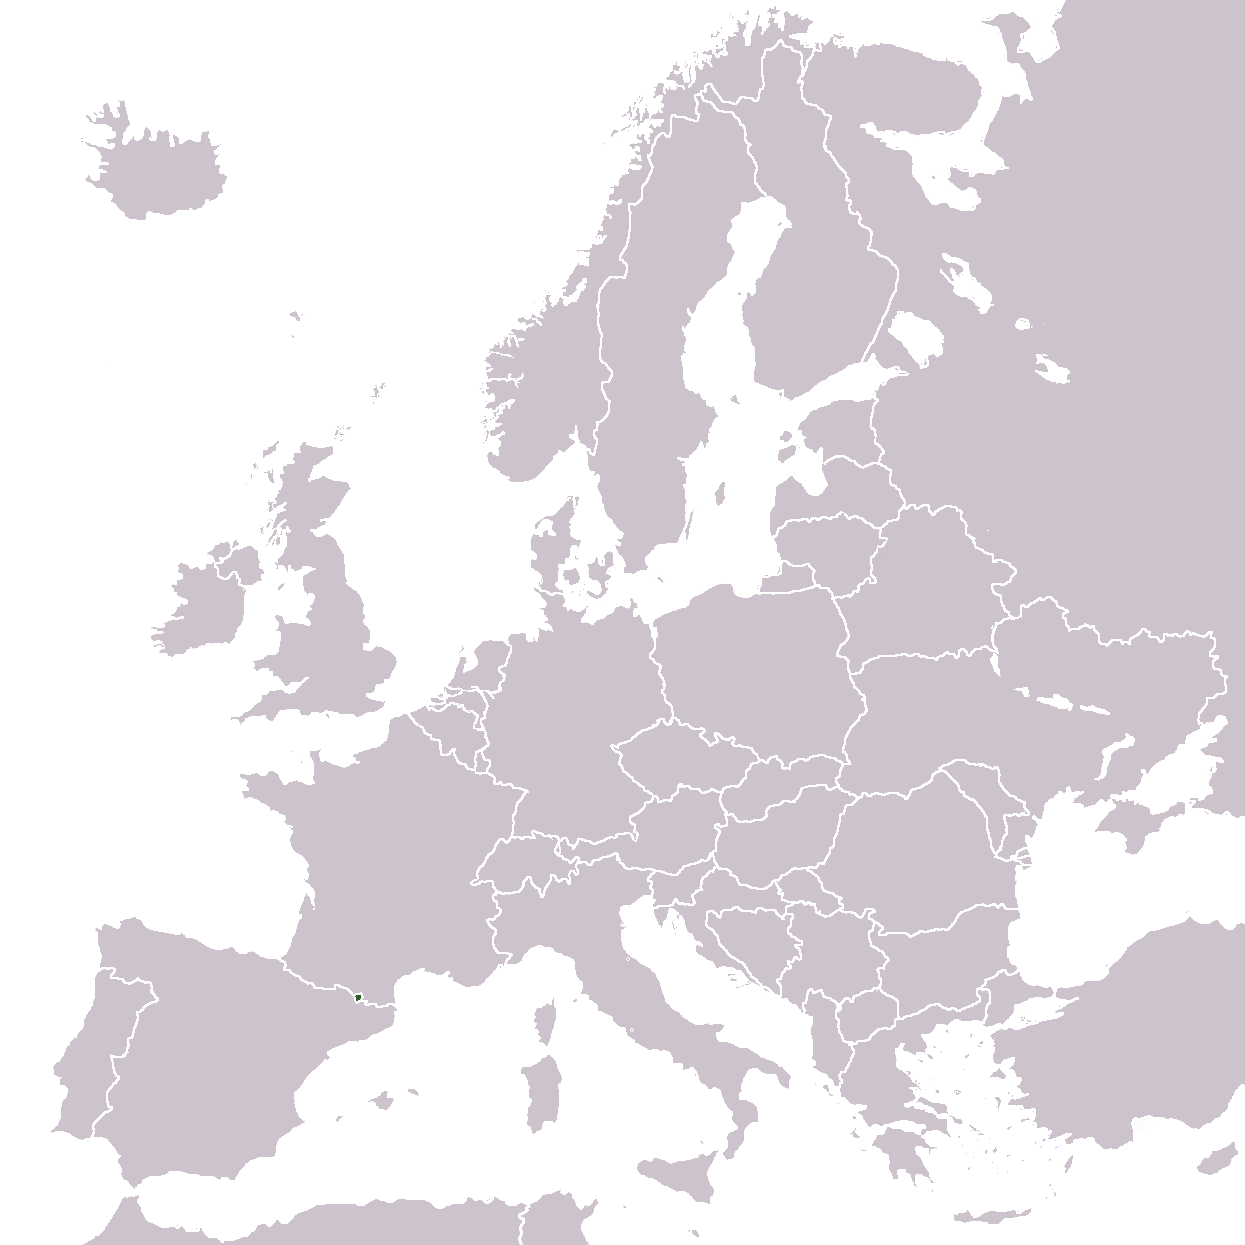 Europe Location And large map